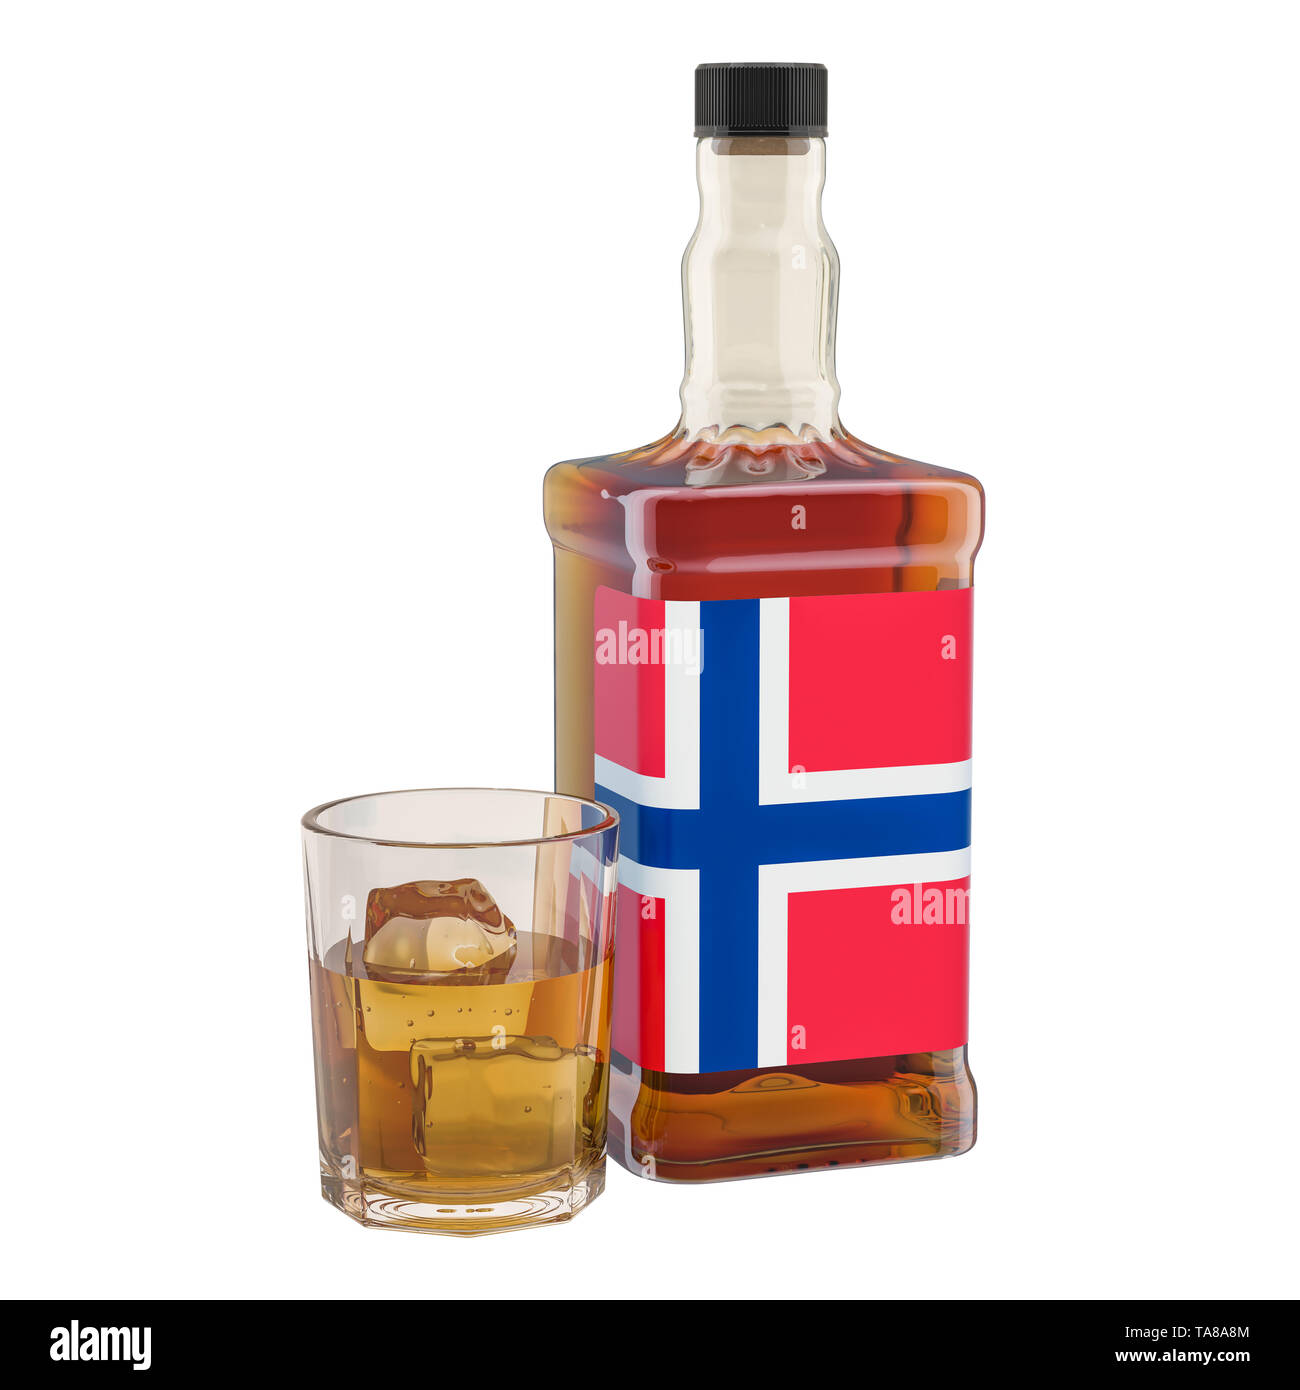 Production and consumption of alcohol drinks in Norway